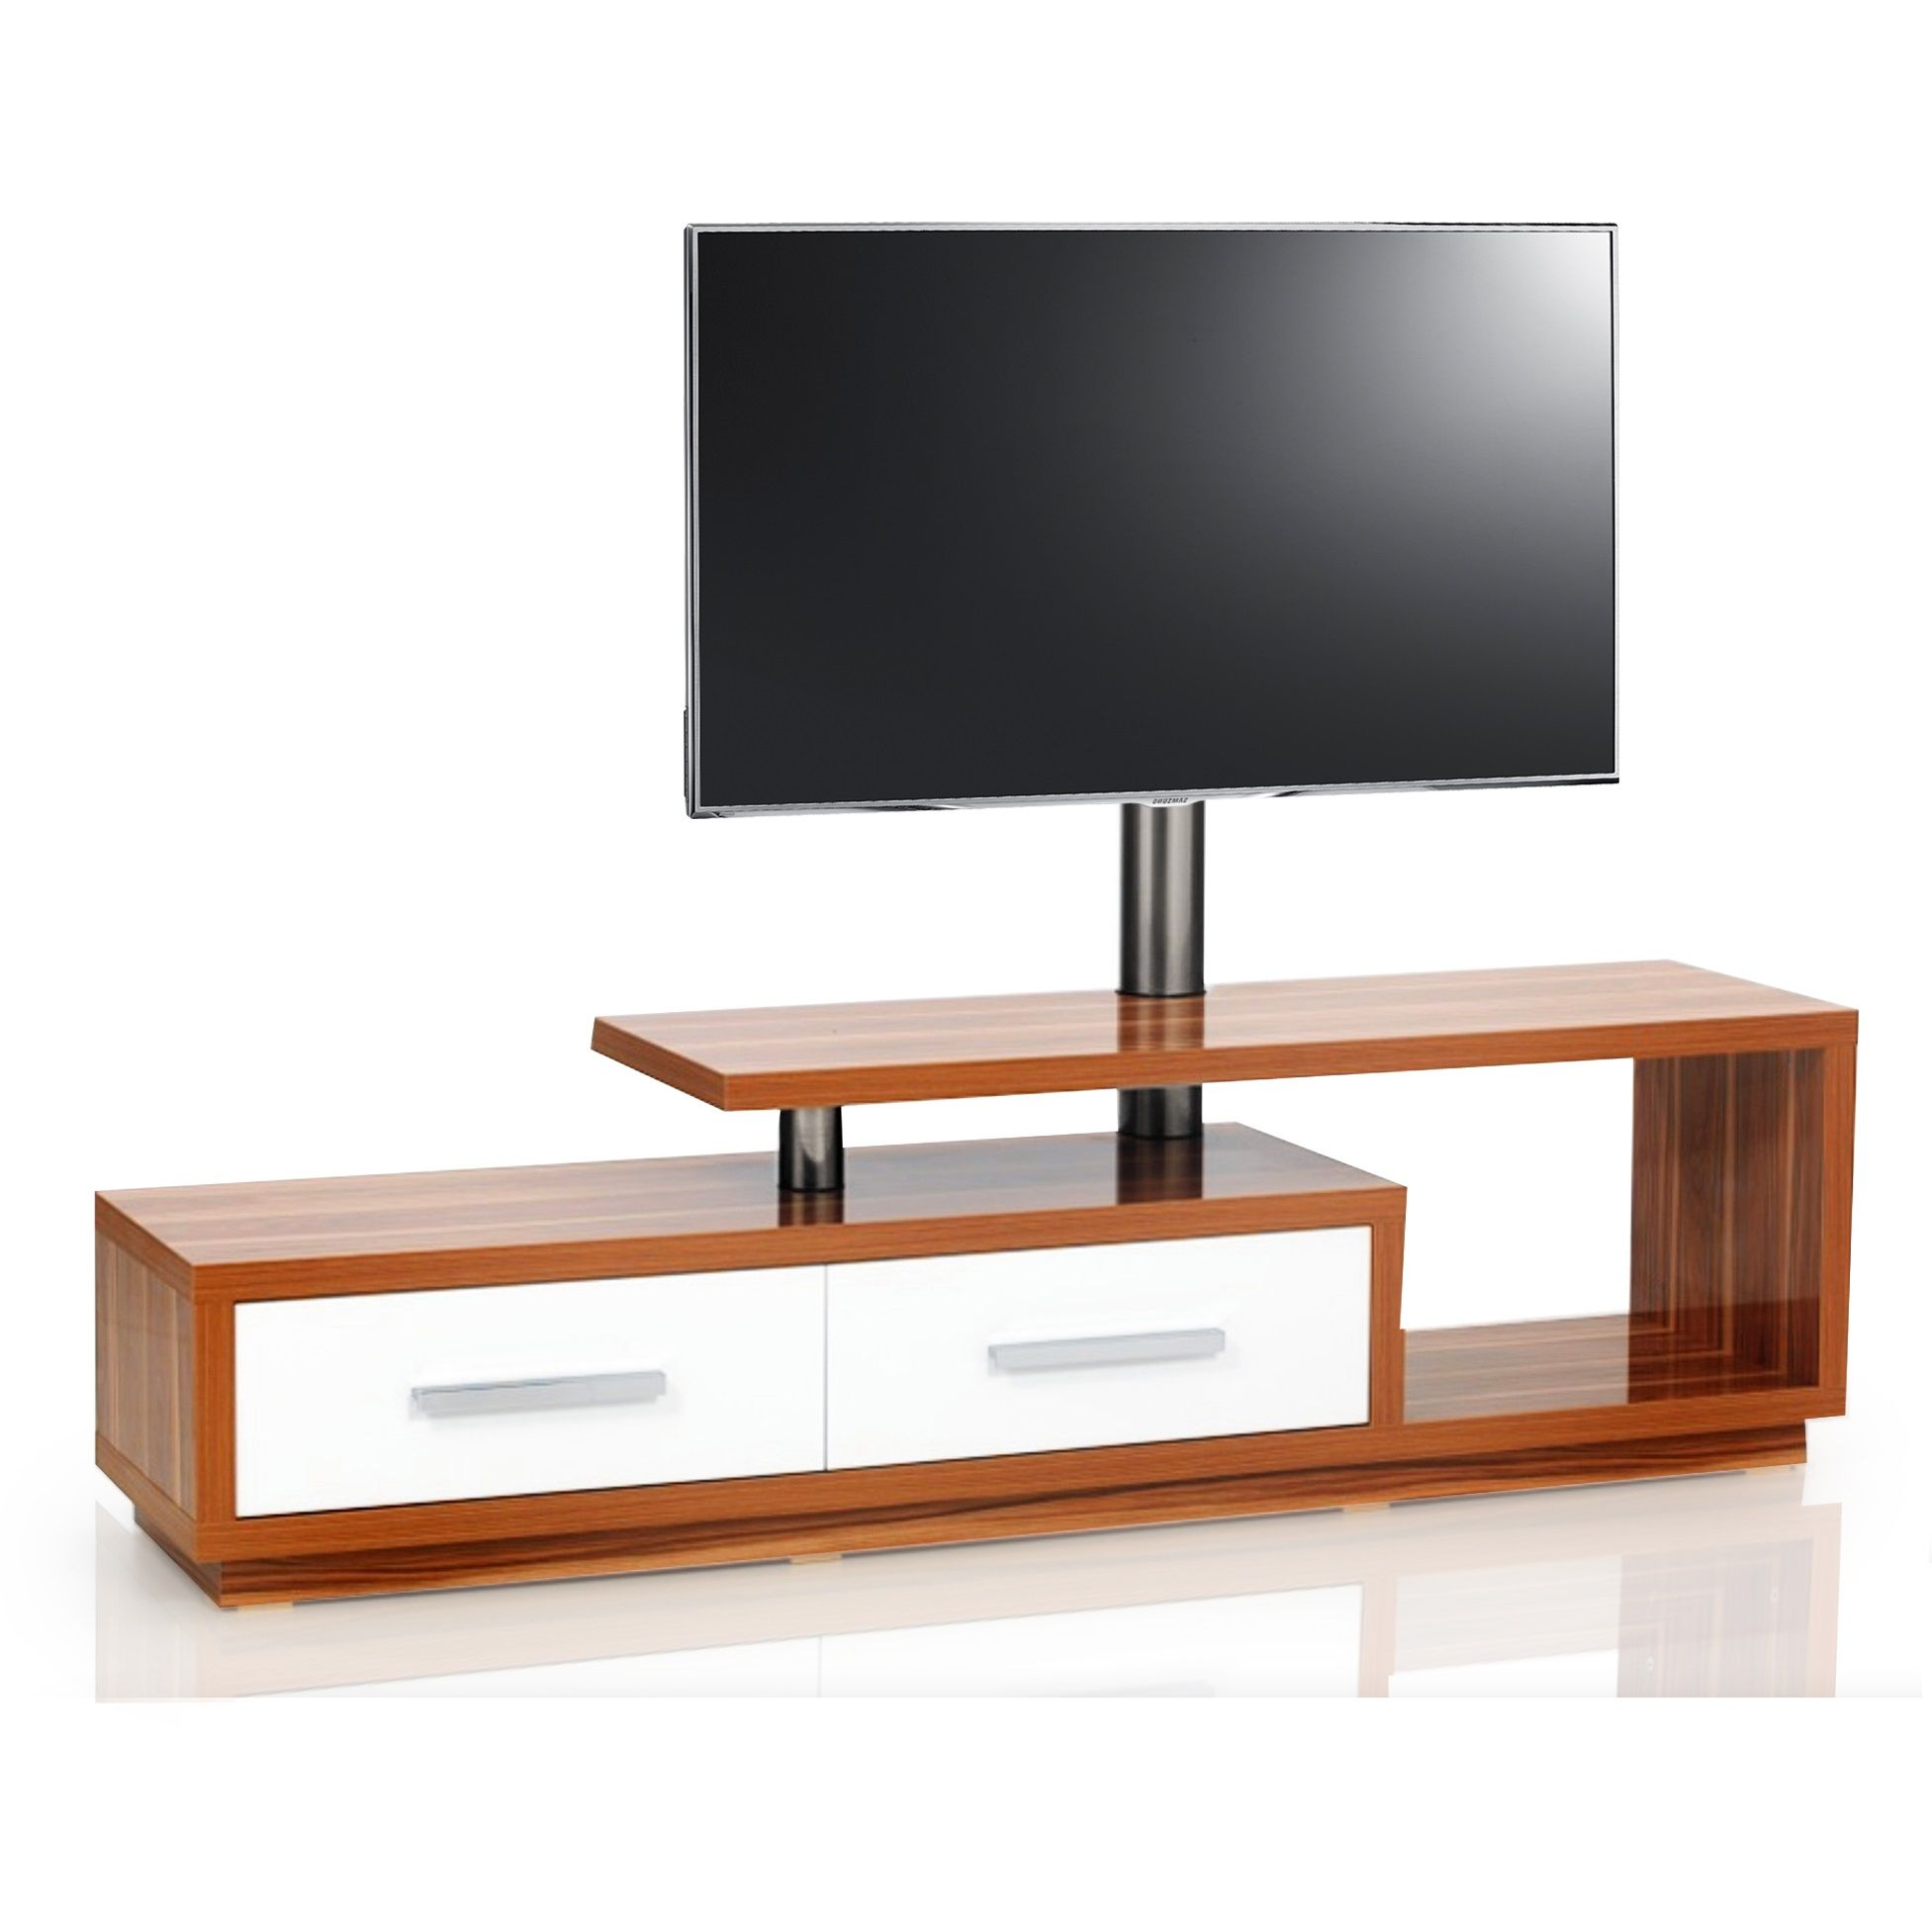 Photo Table Tele - Best Table De Tv Design Images Joshkrajcik Us Joshkrajcik Us[mjhdah]https://www.ikea.com/PIAimages/59638_PE165526_S5.JPG